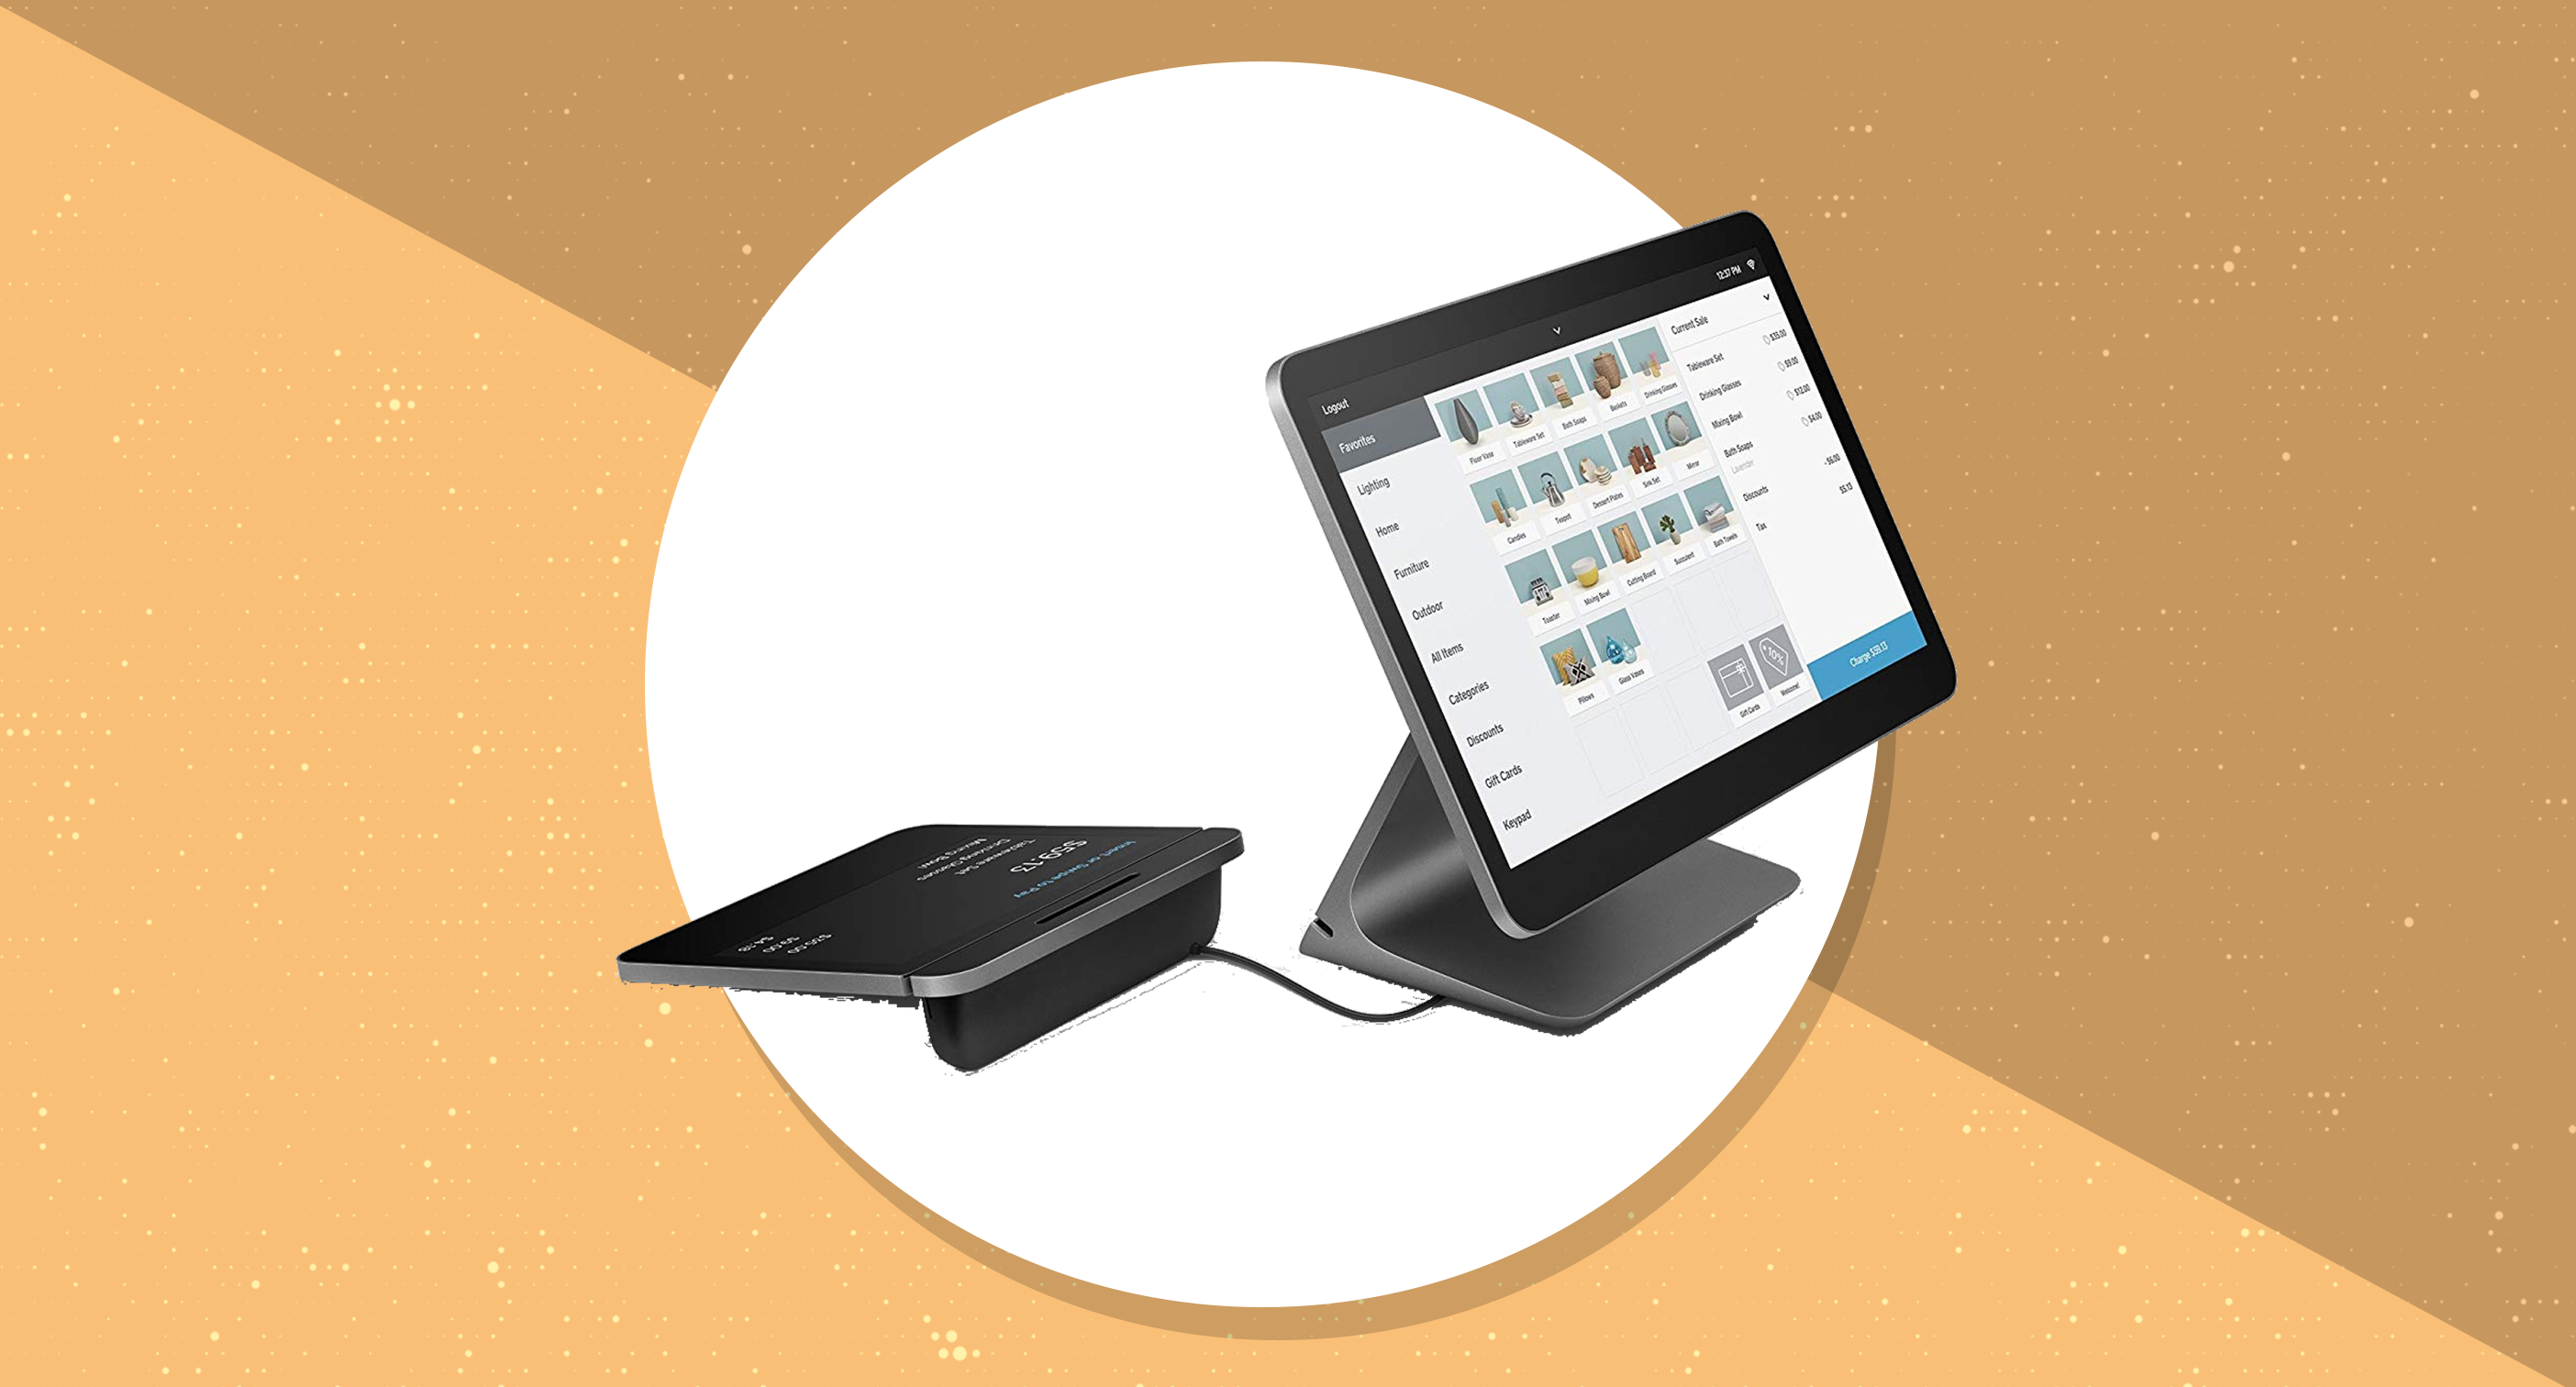 Calling all small business owners! The Square Register is on sale for $160 off at Amazon, today only